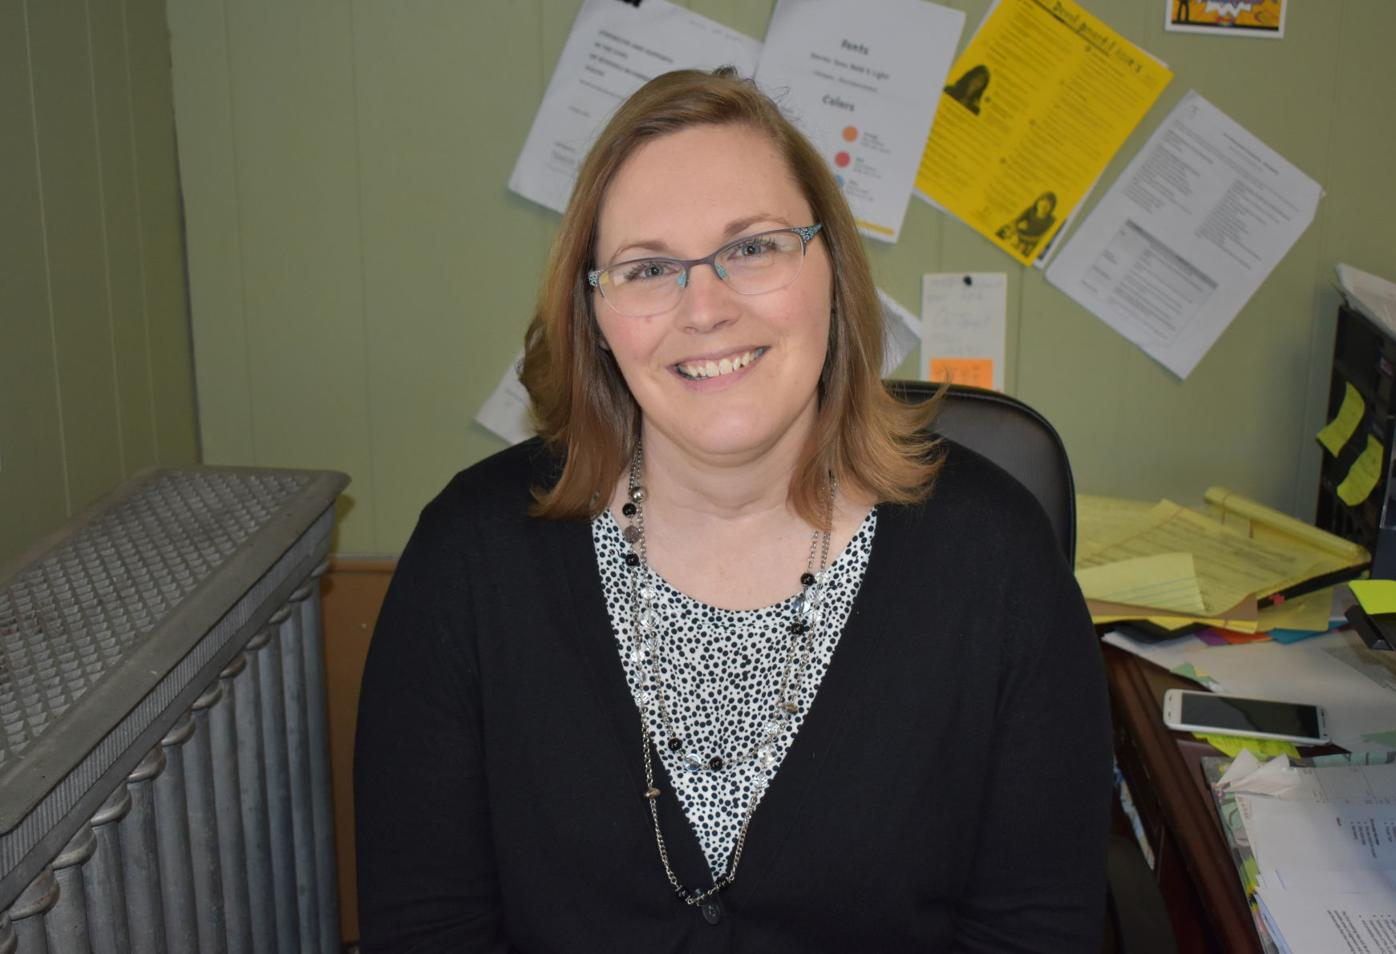 PROFILE: When it comes to developing local youth, Becky Ford takes the  mantle   News   southernminn.com